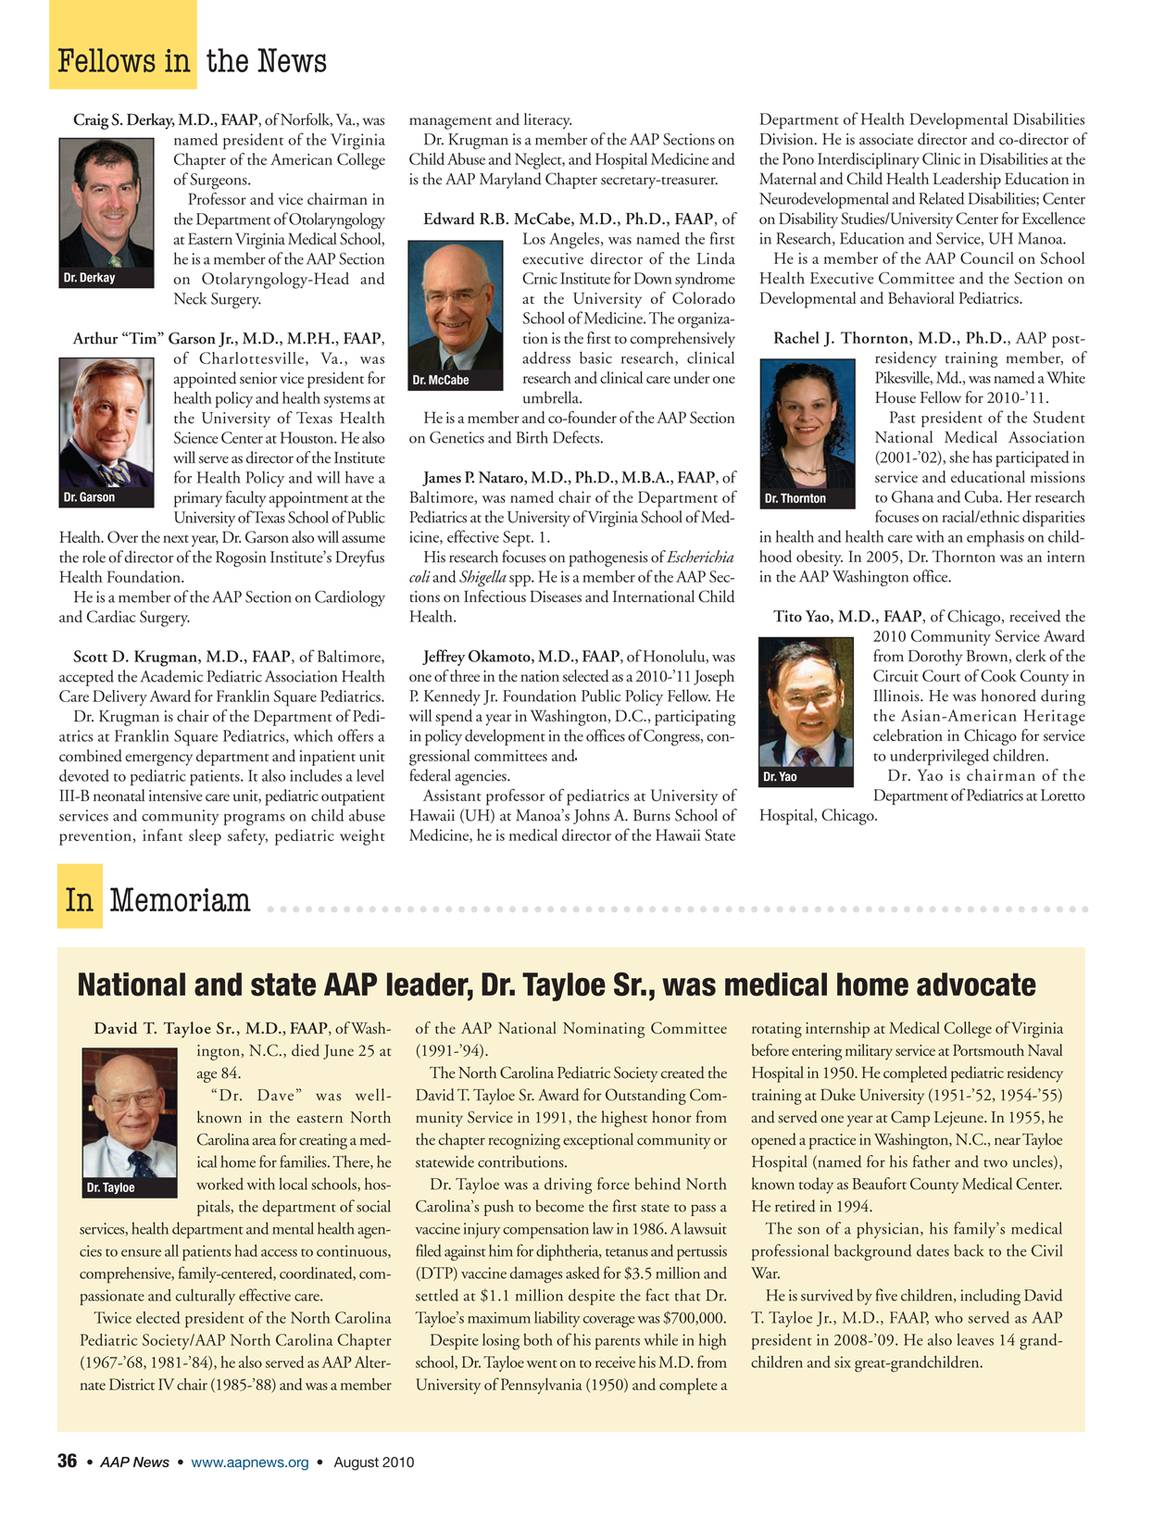 AAP News - August 2012 - page 35